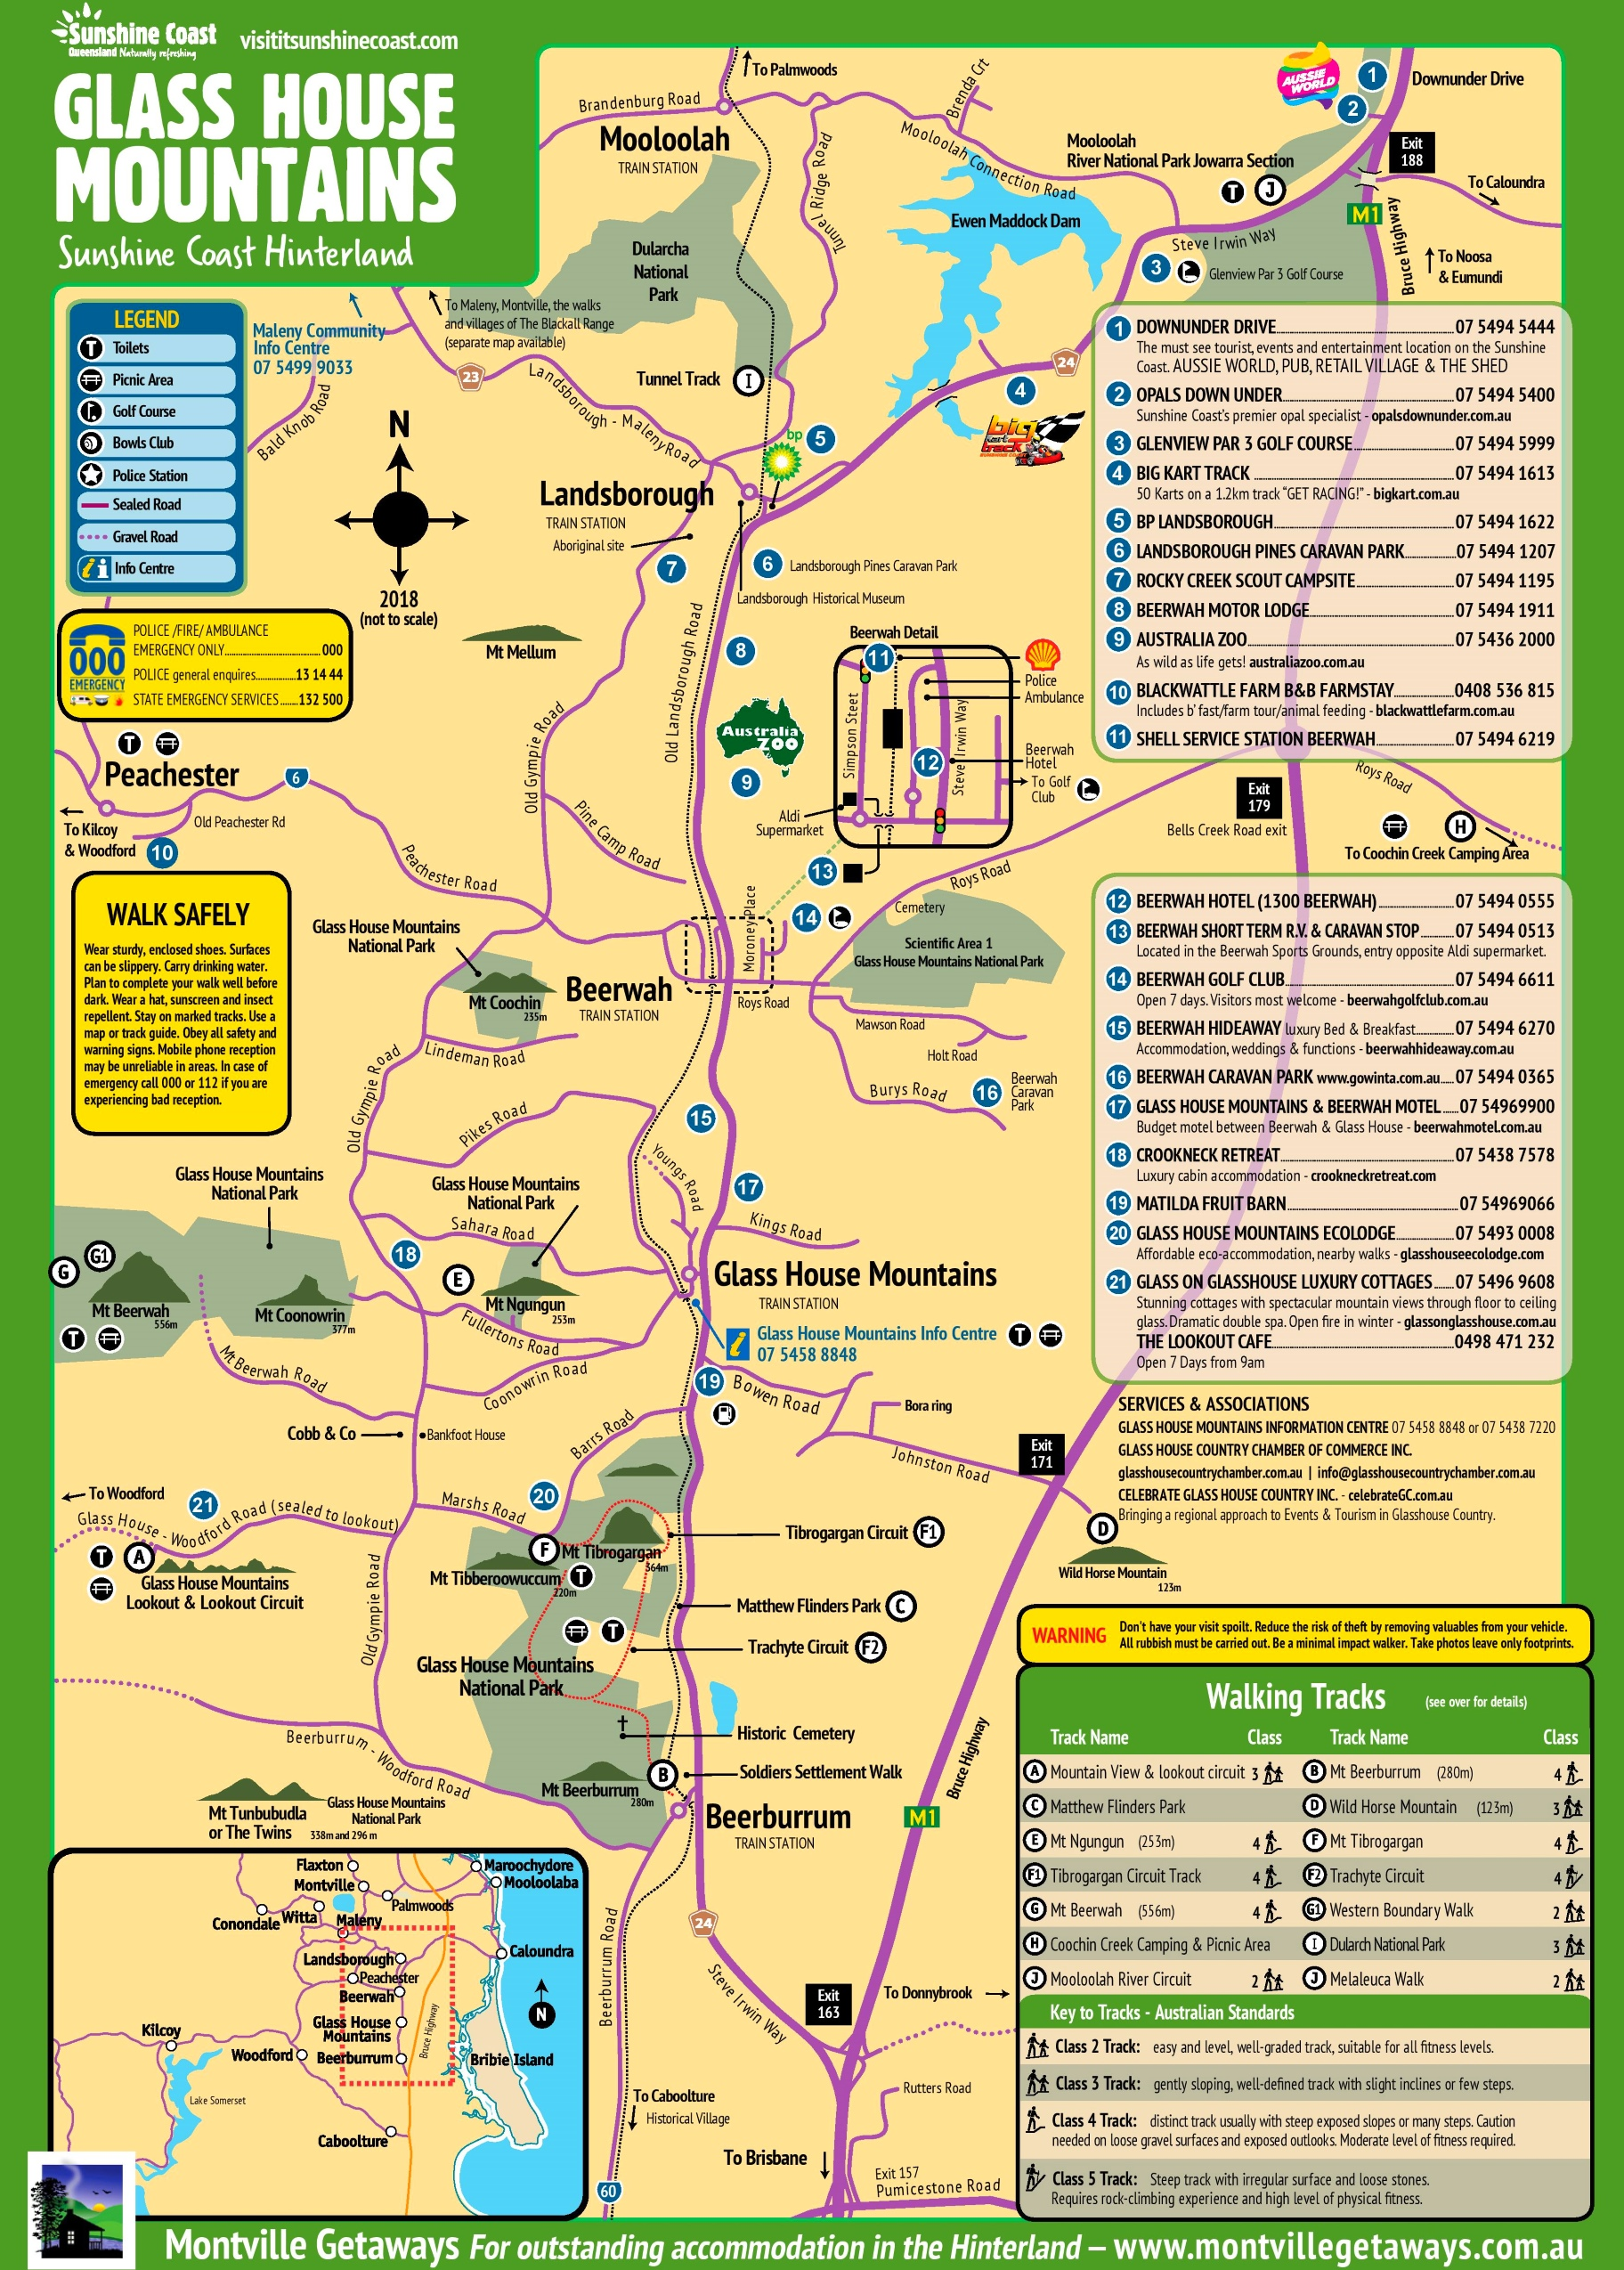 Glass House Mountains map